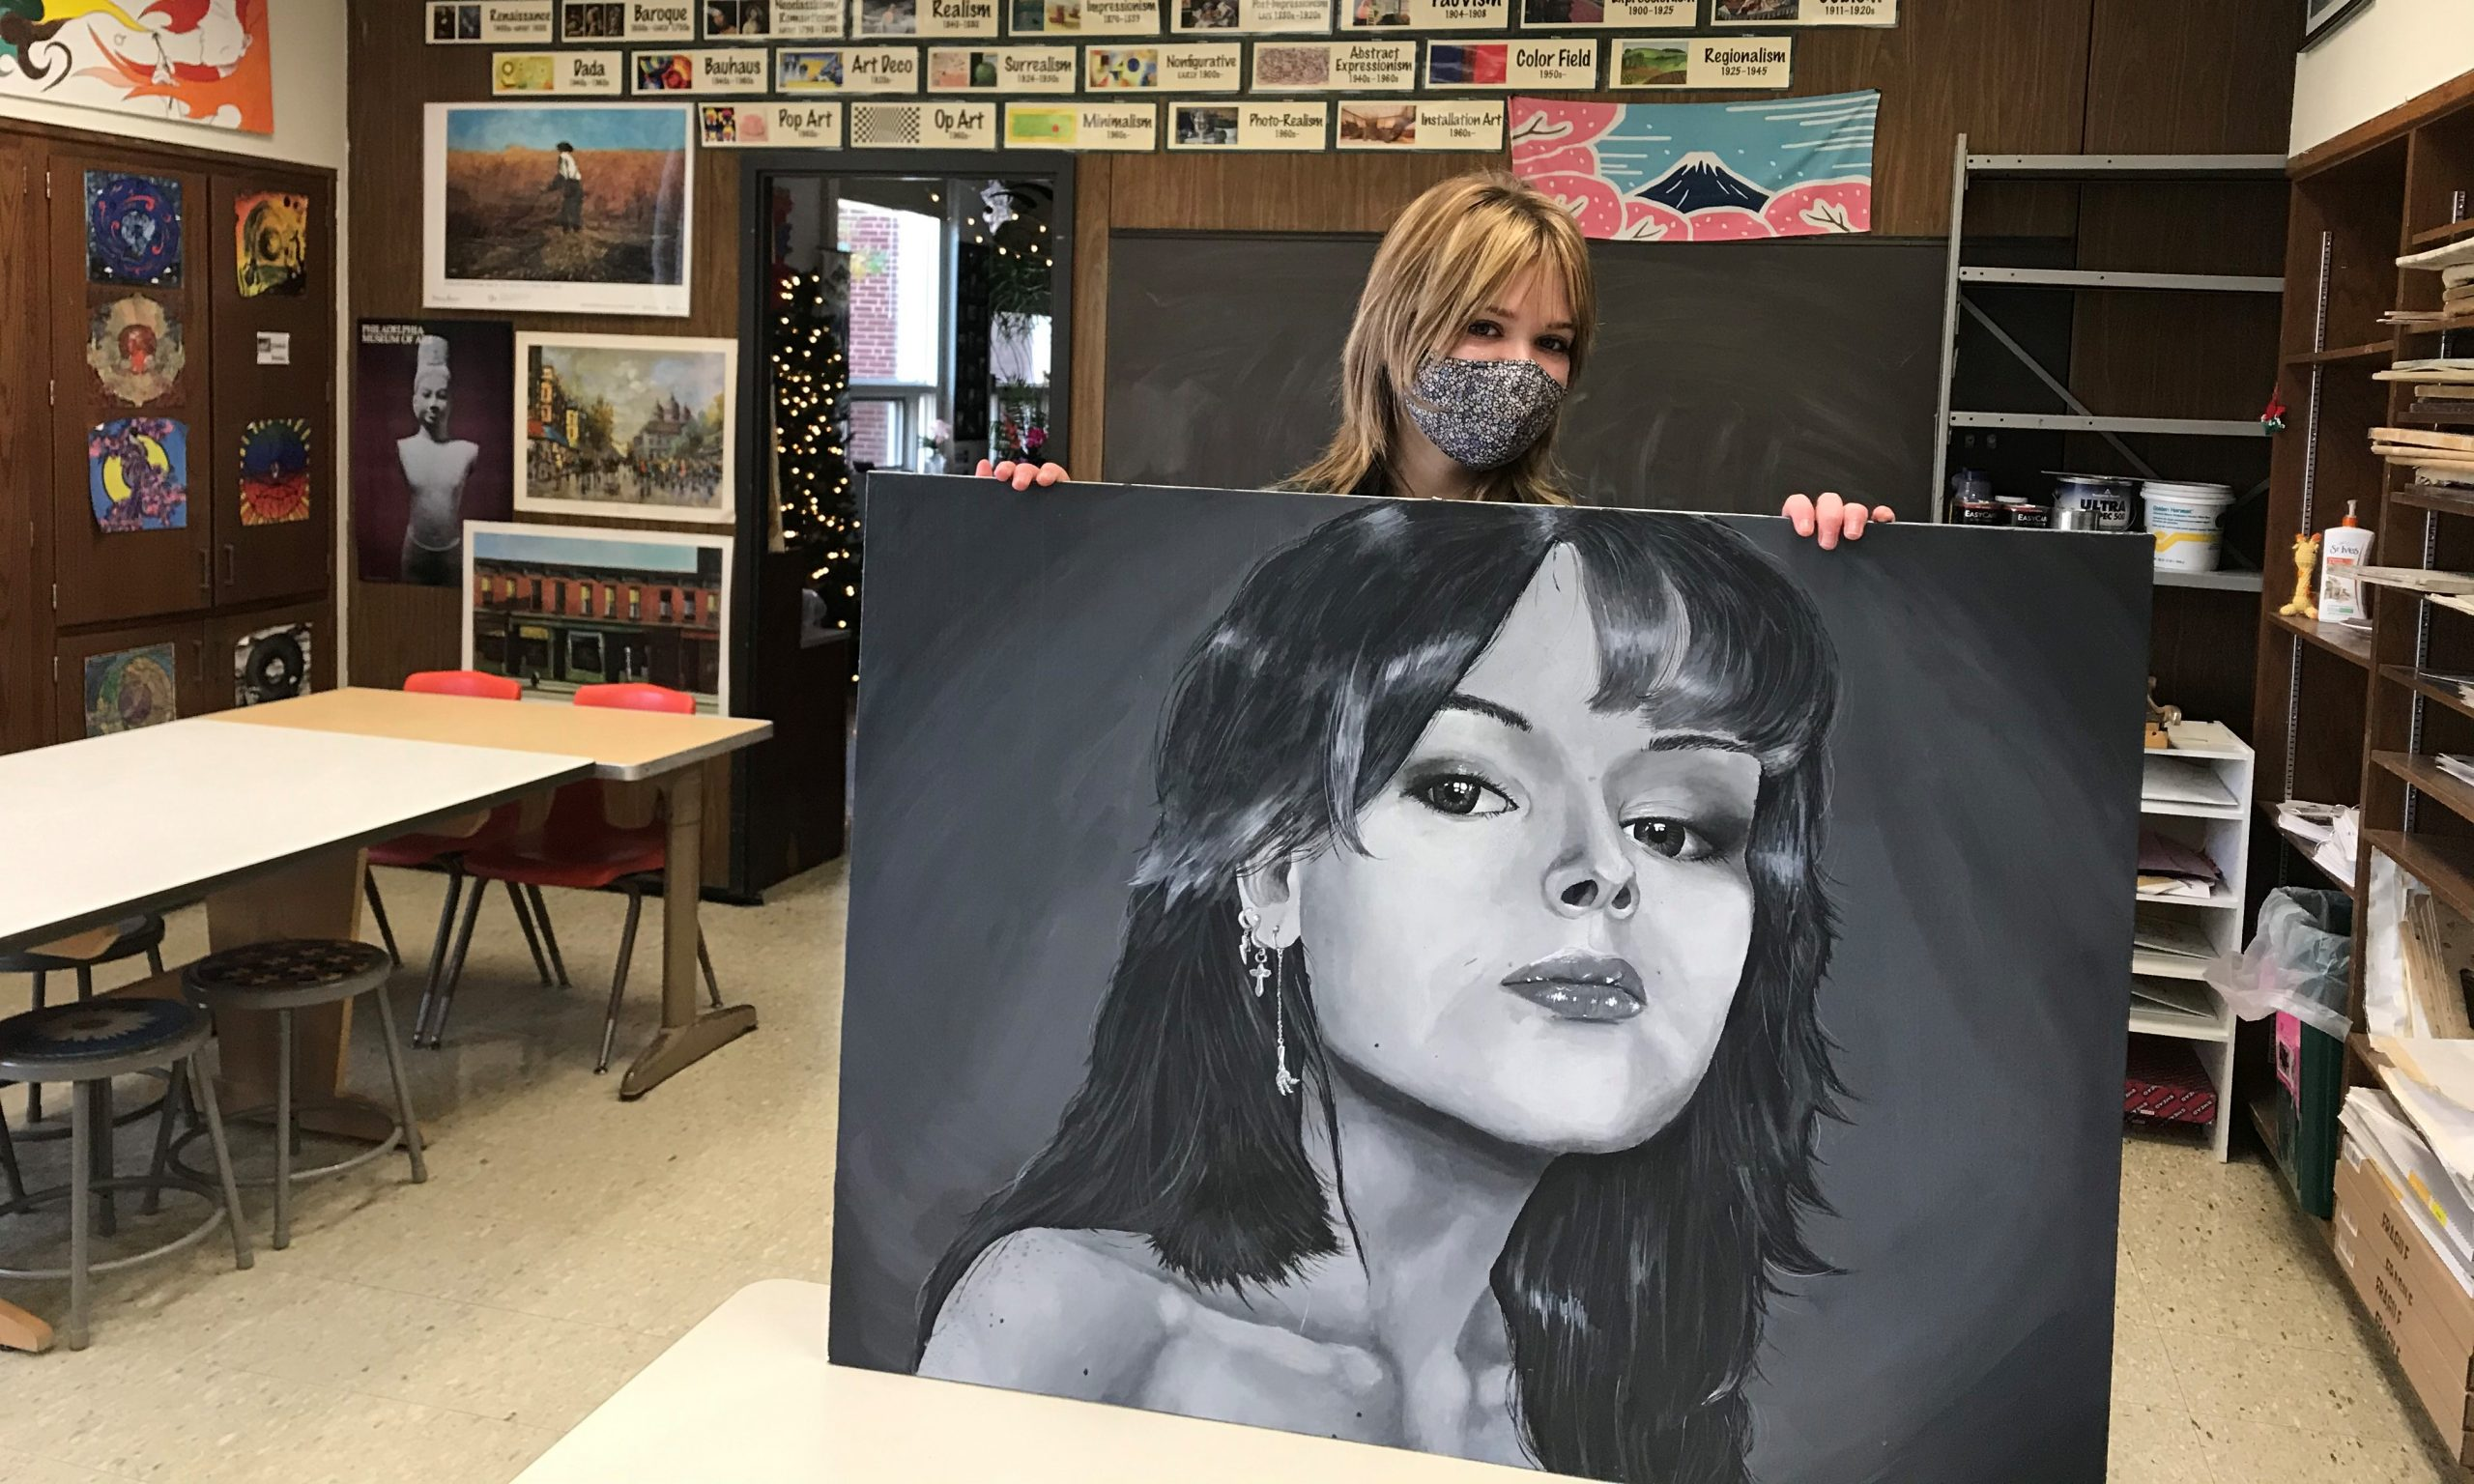 Sydney Bower's Self Portrait from Advanced Senior Art Class